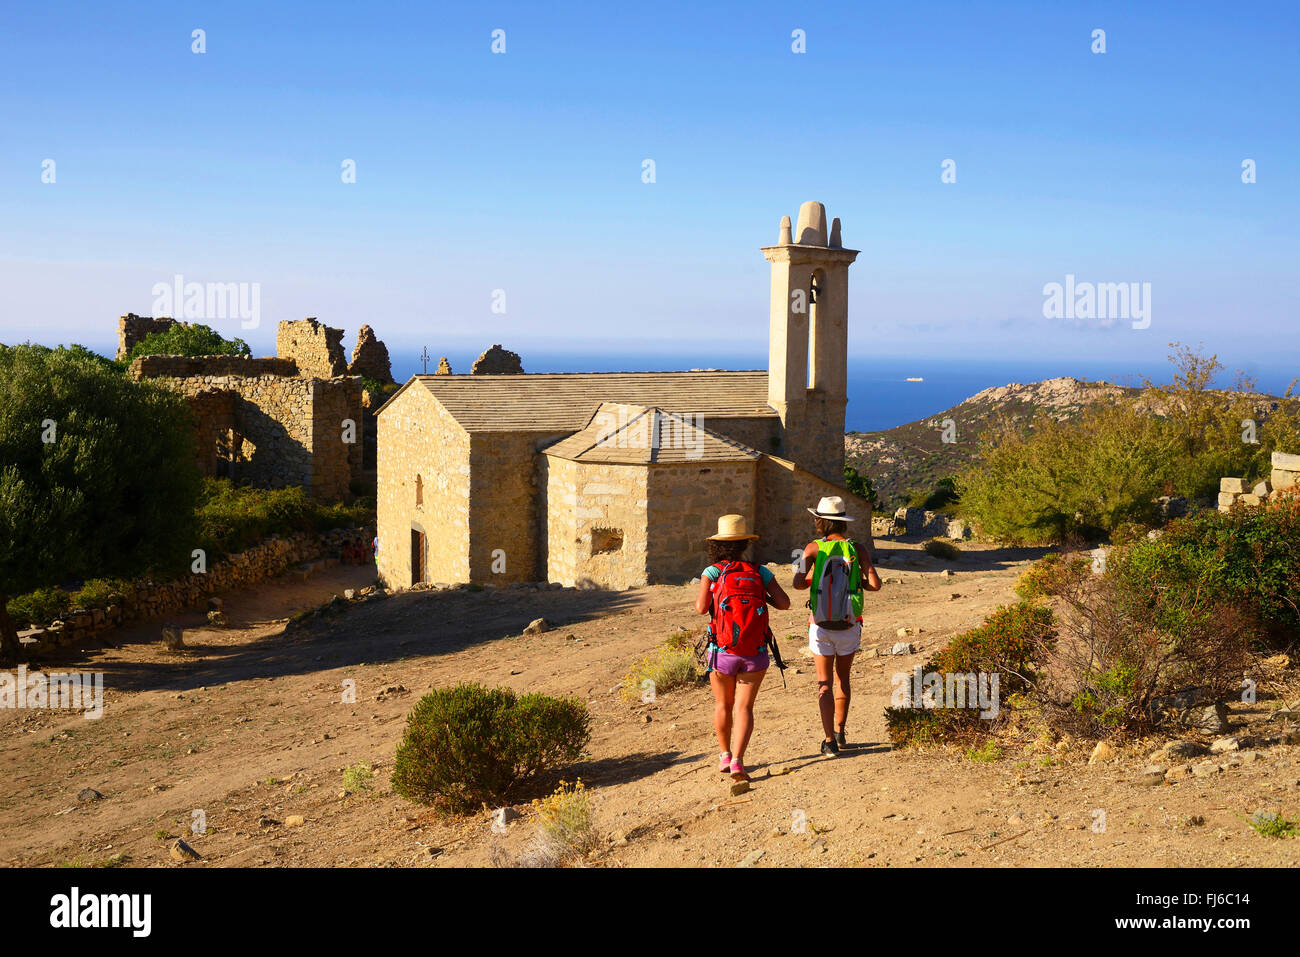 wanderer at the little disused village of Occi, France, Corsica, Calvi - Stock Image